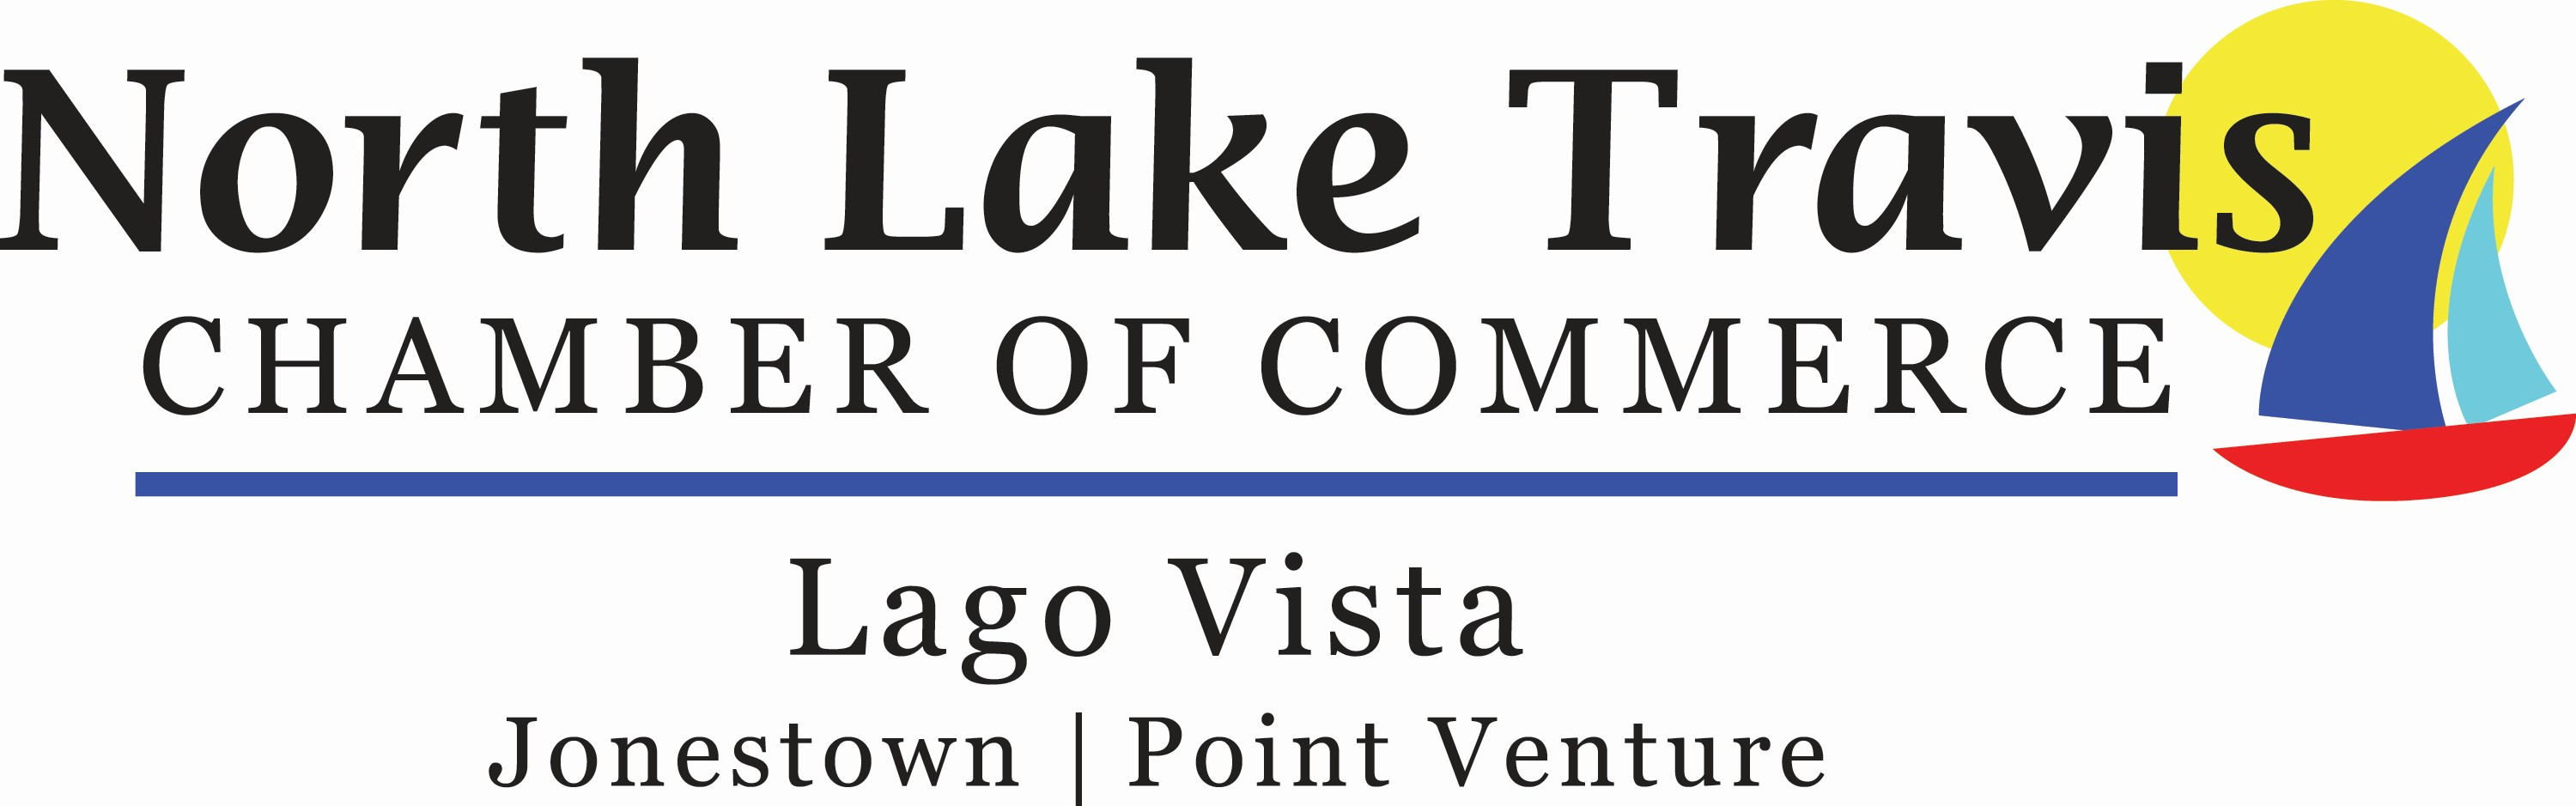 North Lake Travis Chamber of Commerce